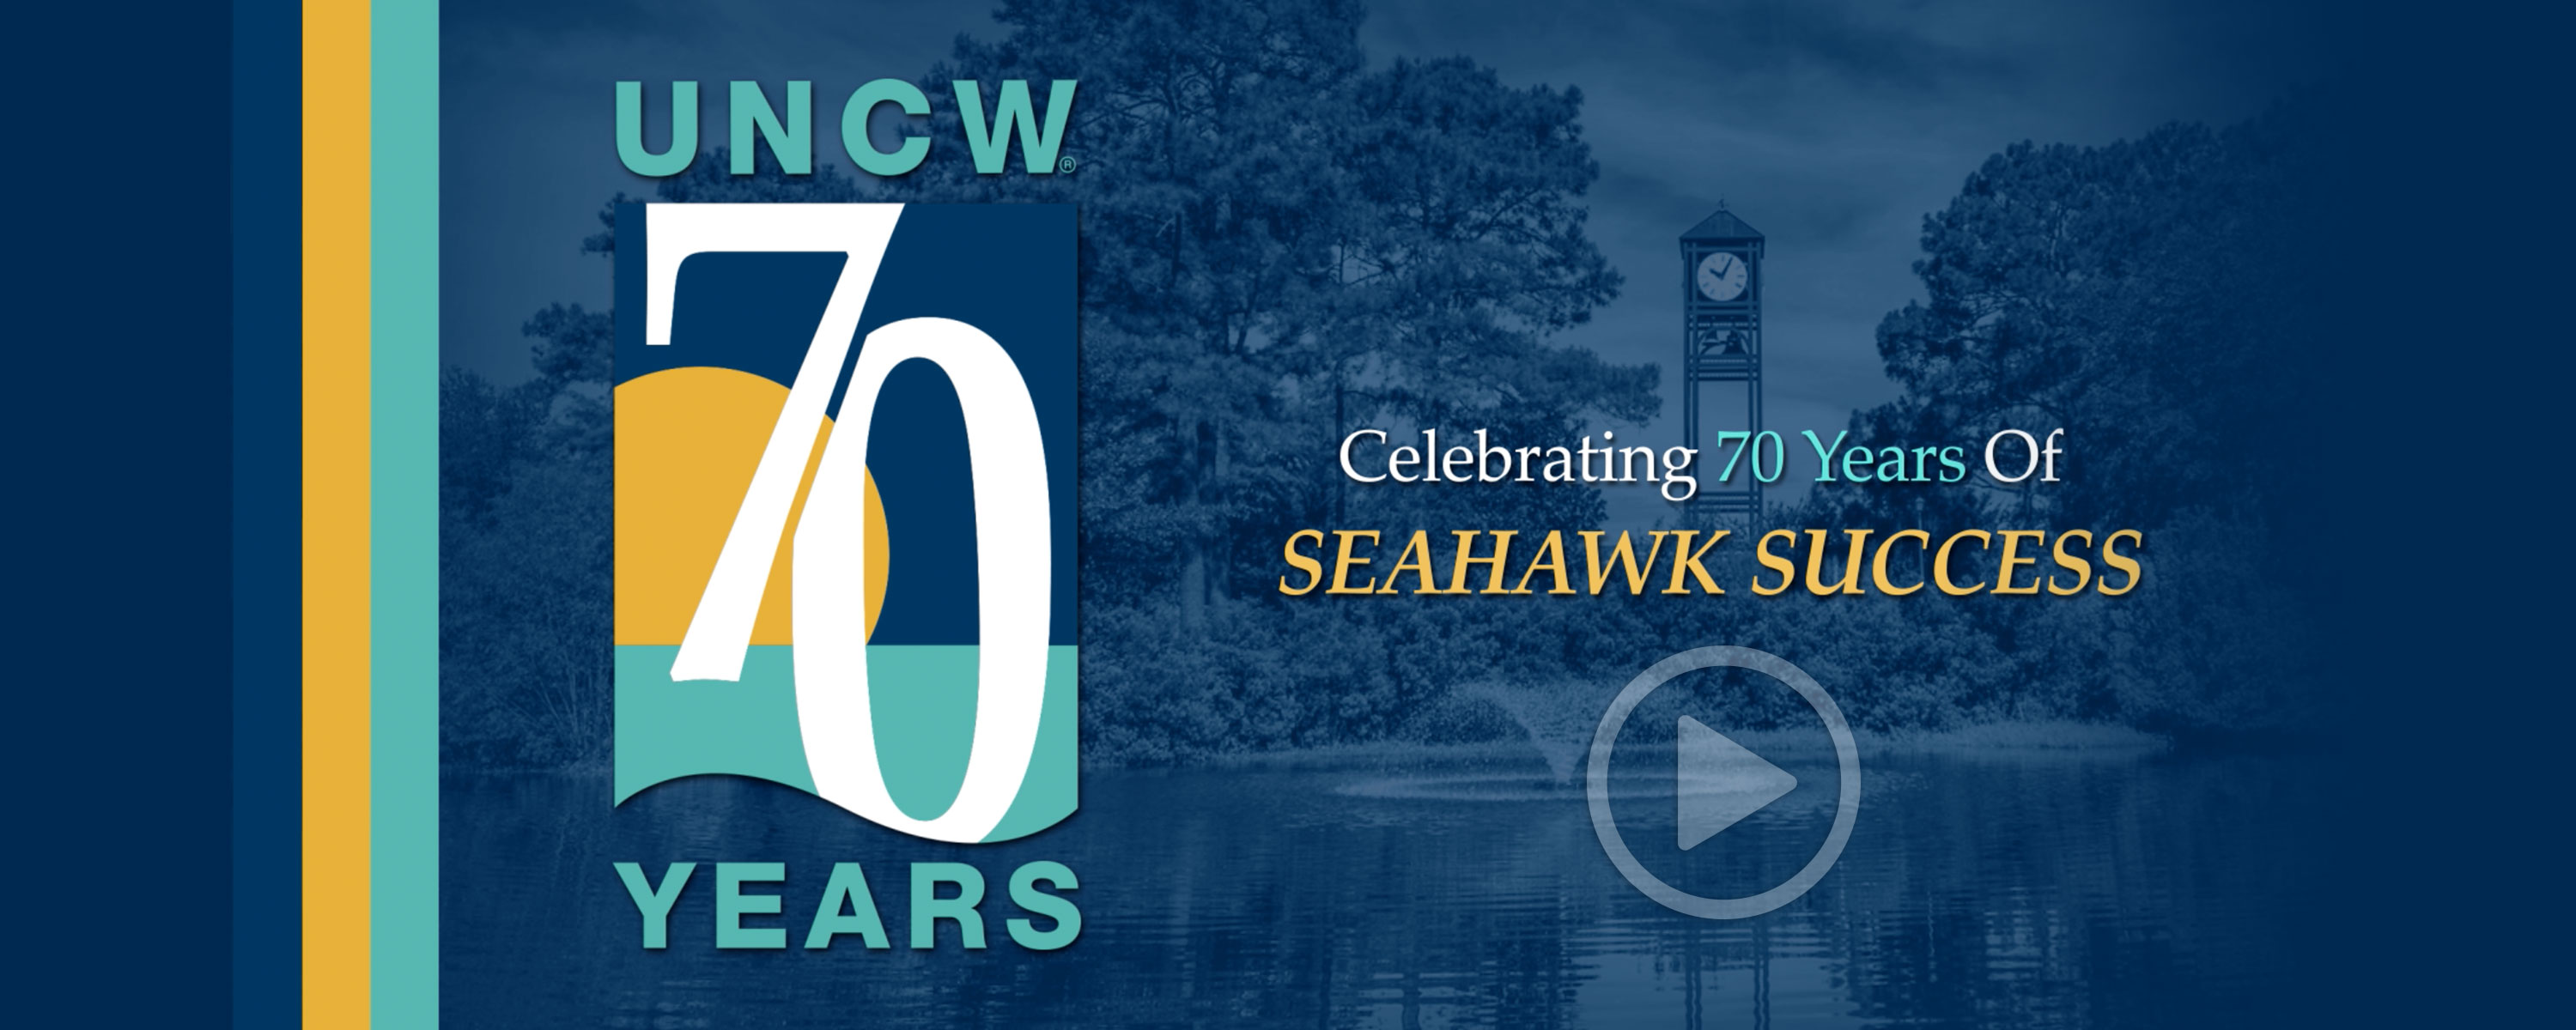 70 Years of Seahawk Success - 70 logo and video play button